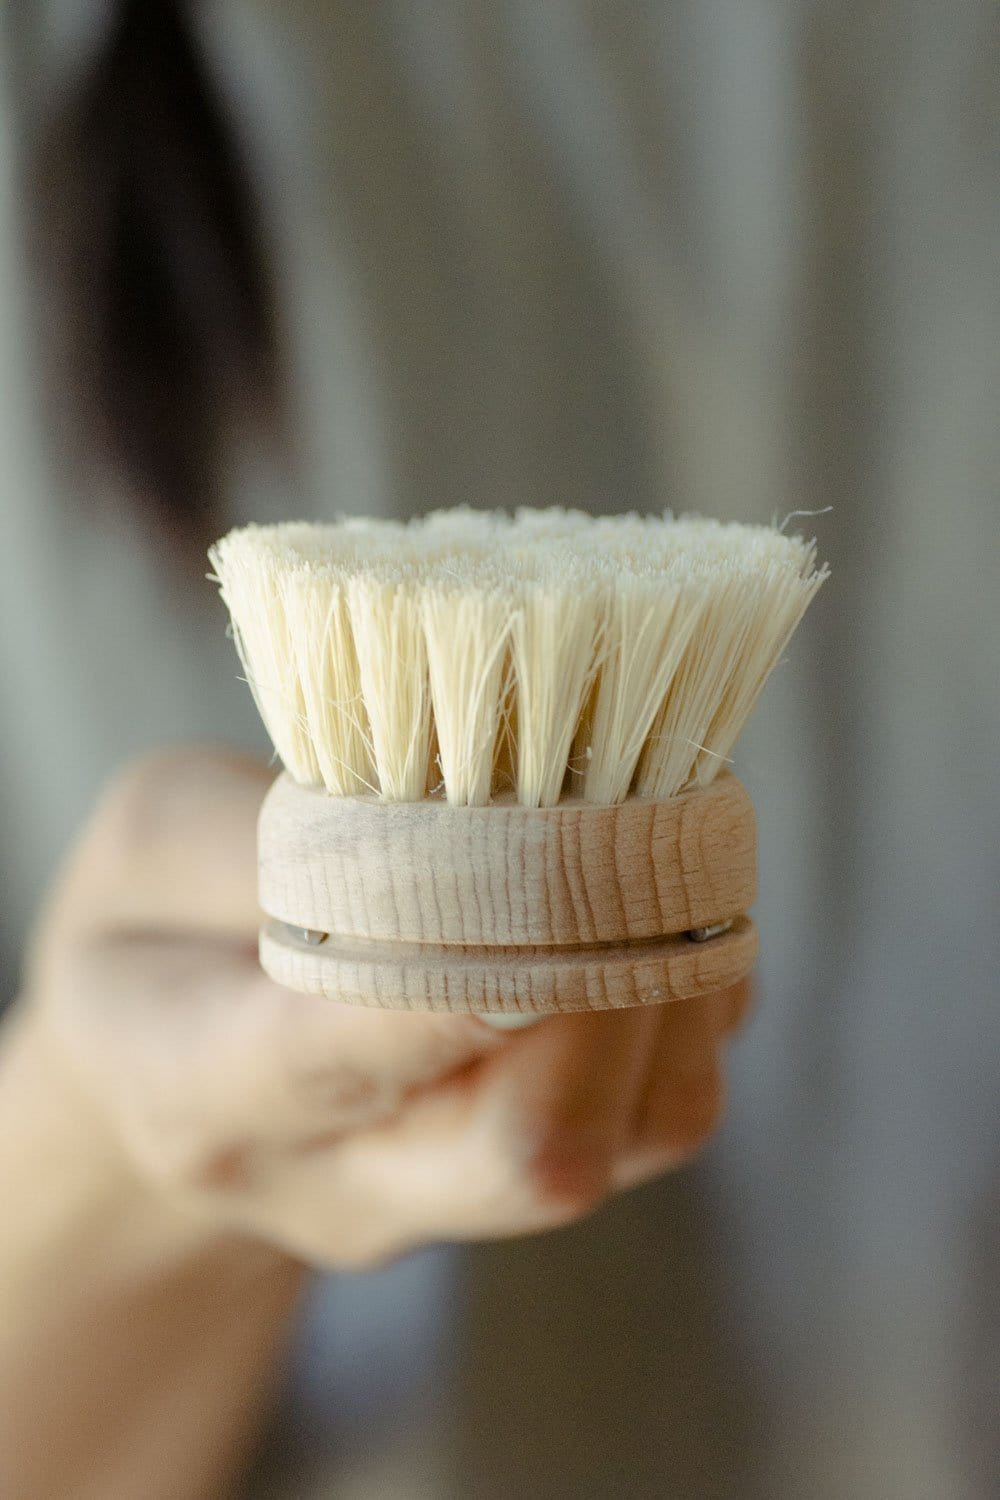 Dish Brush - White Teakwood & Agave Fiber - Naturally Anti-Microbial Hypoallergenic Sustainable Eco-Friendly Cork